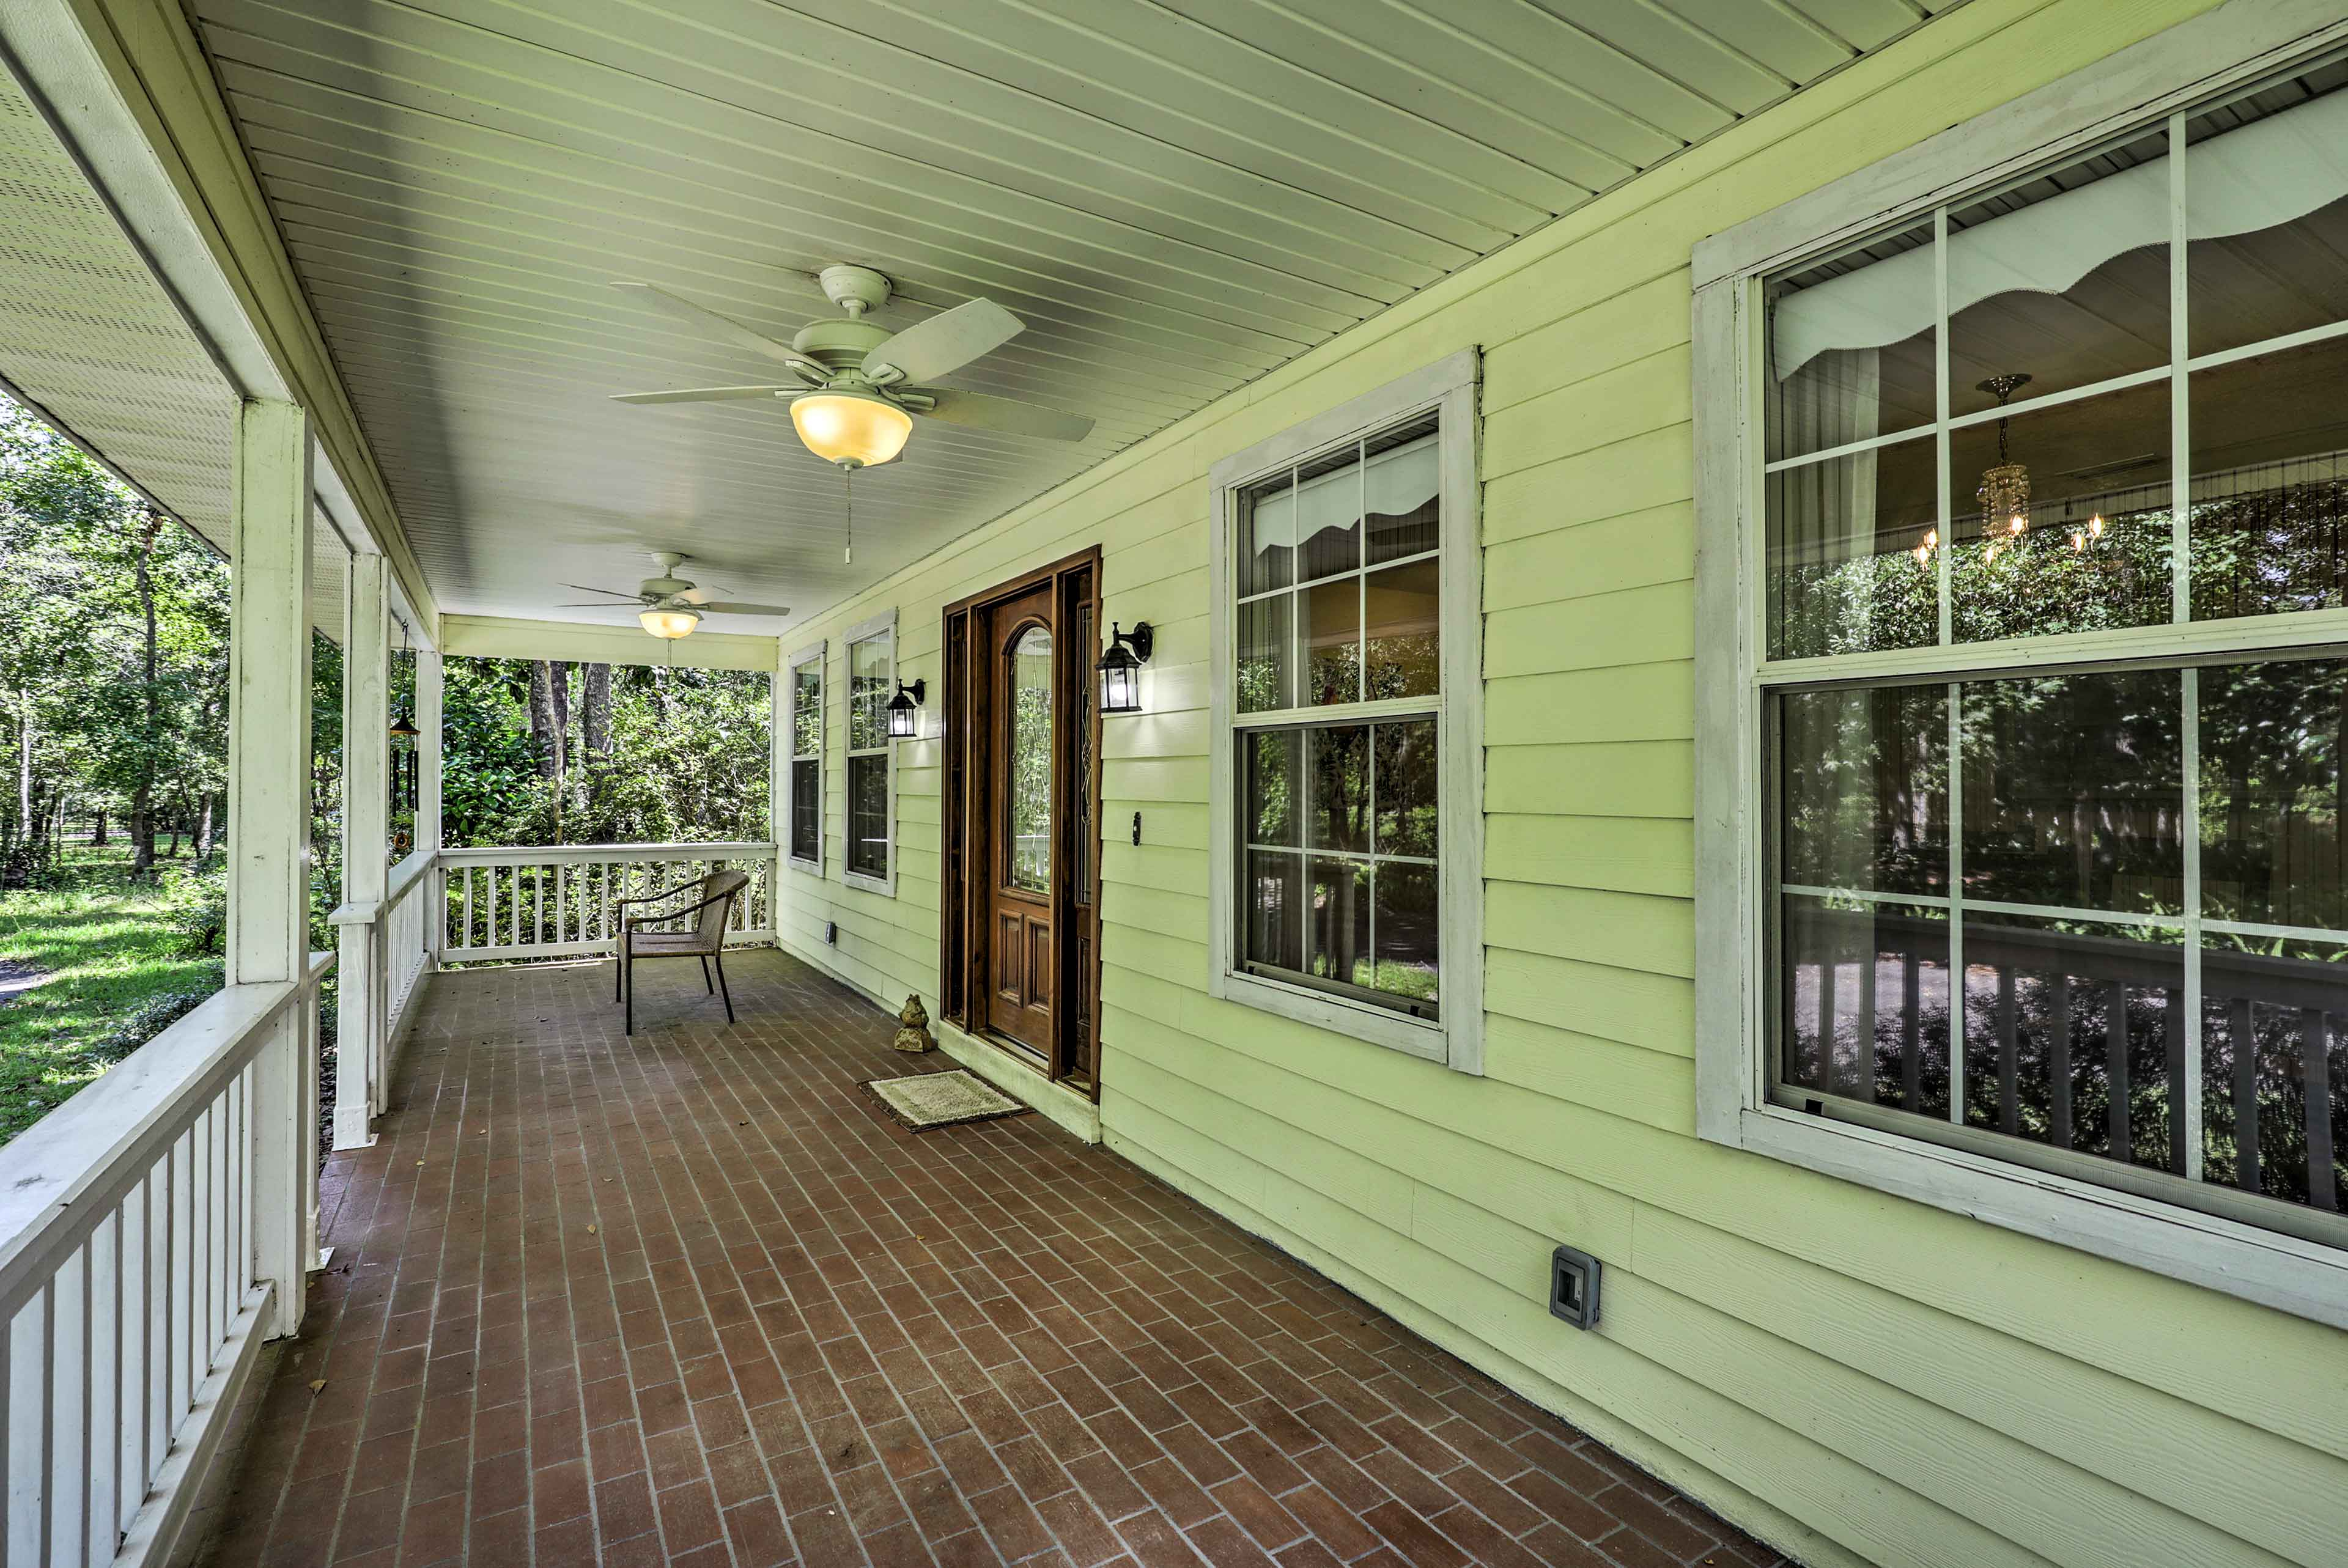 Pour a tall cup of sweet iced tea and relax on the front porch. Lemon is a must.